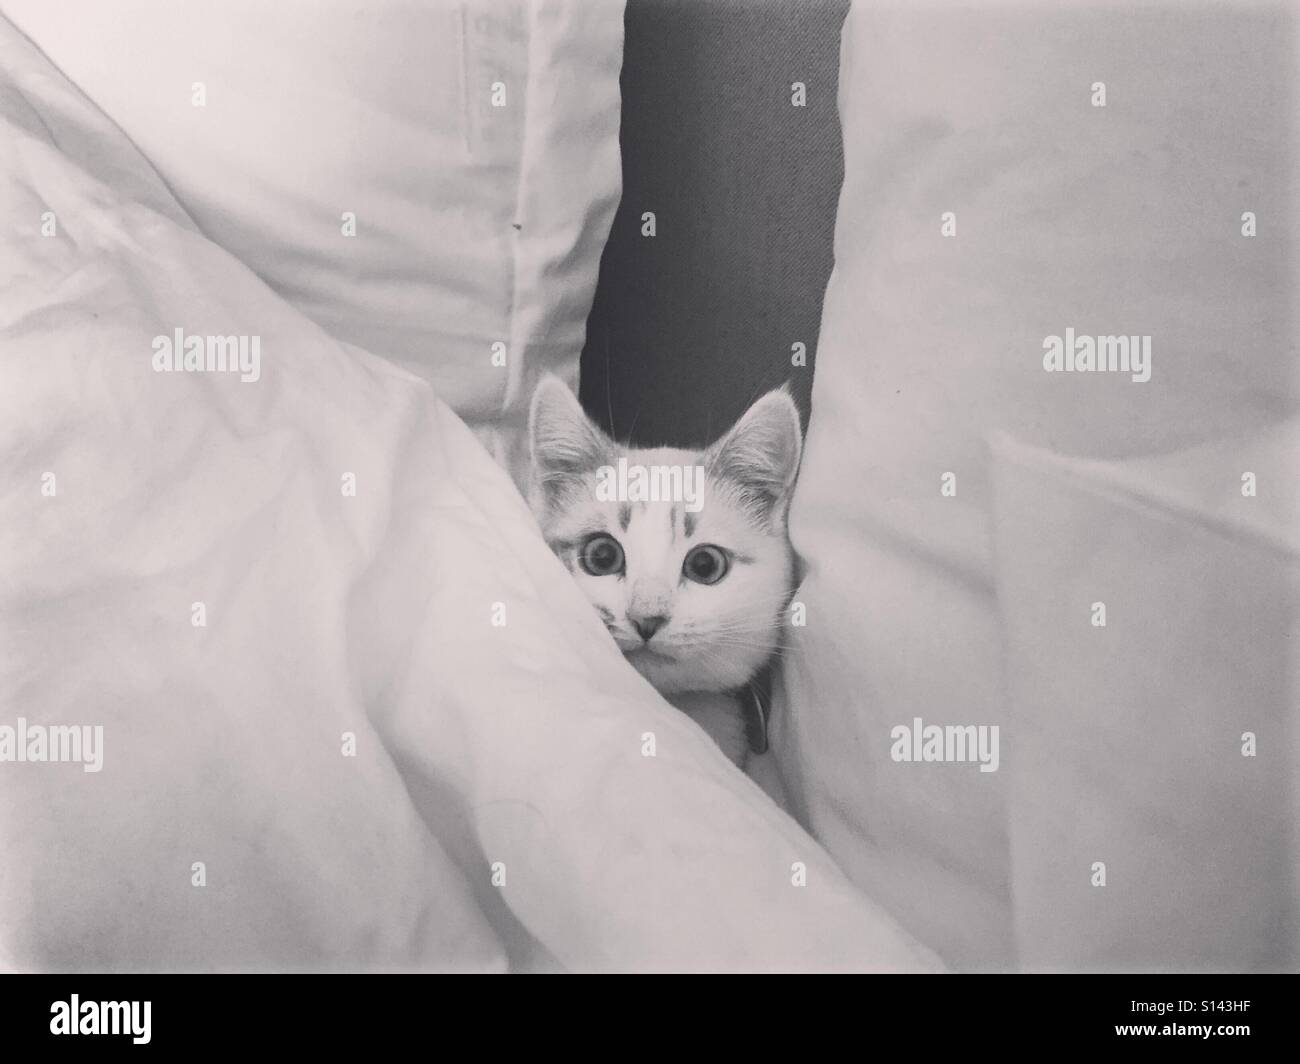 A funny photo of a white cat hiding in white pillows and blankets. - Stock Image